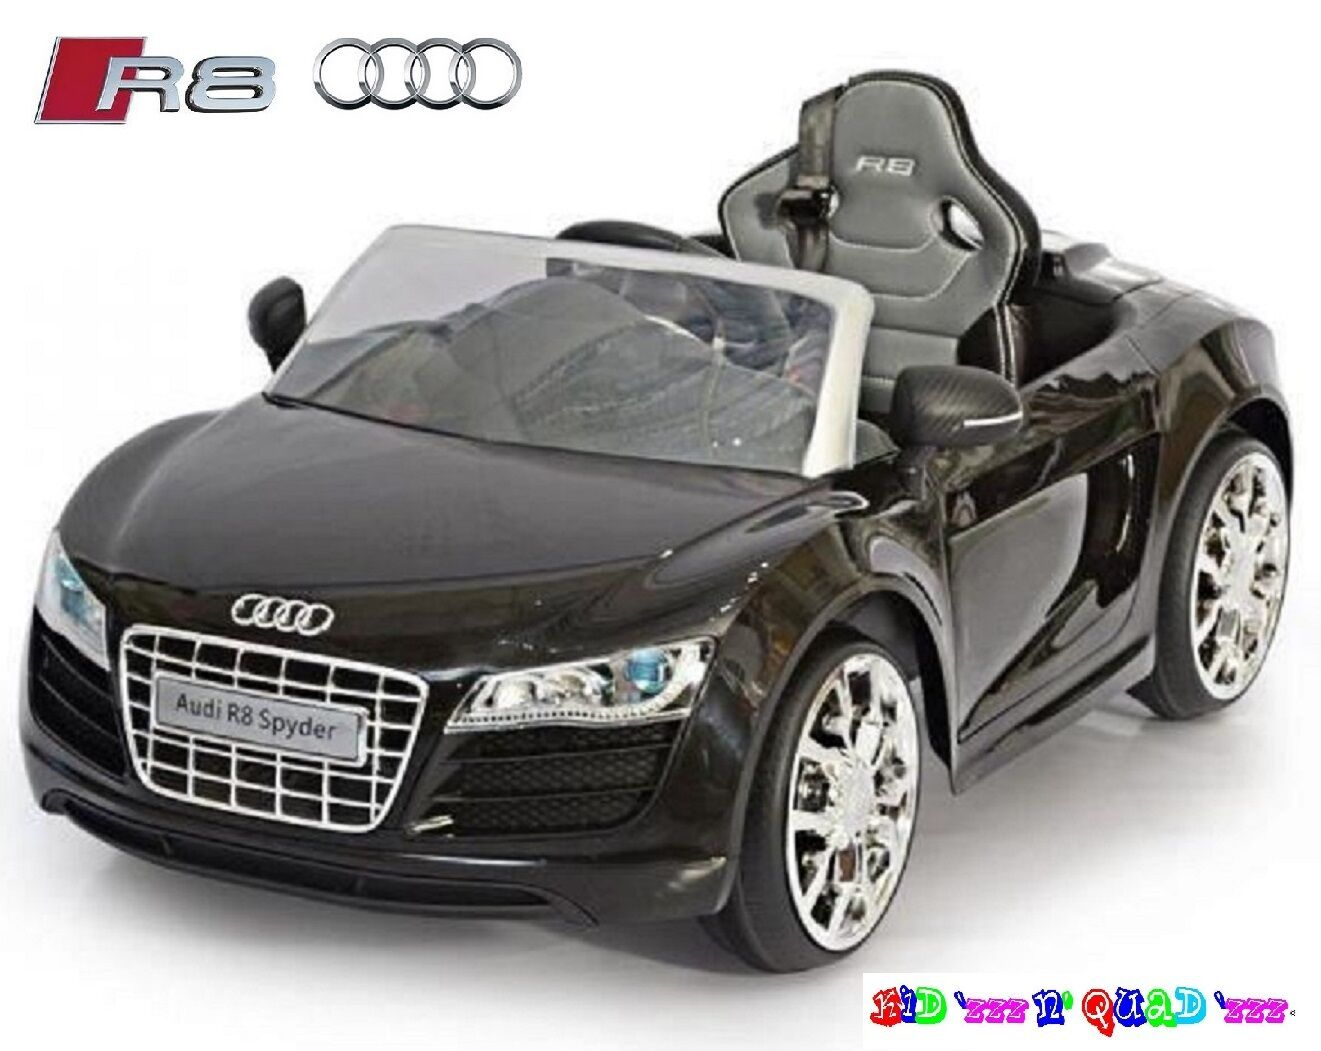 audi r8 spyder 12v voiture electrique enfant 1 5 ans monoplace radiocommande eur 309 00. Black Bedroom Furniture Sets. Home Design Ideas